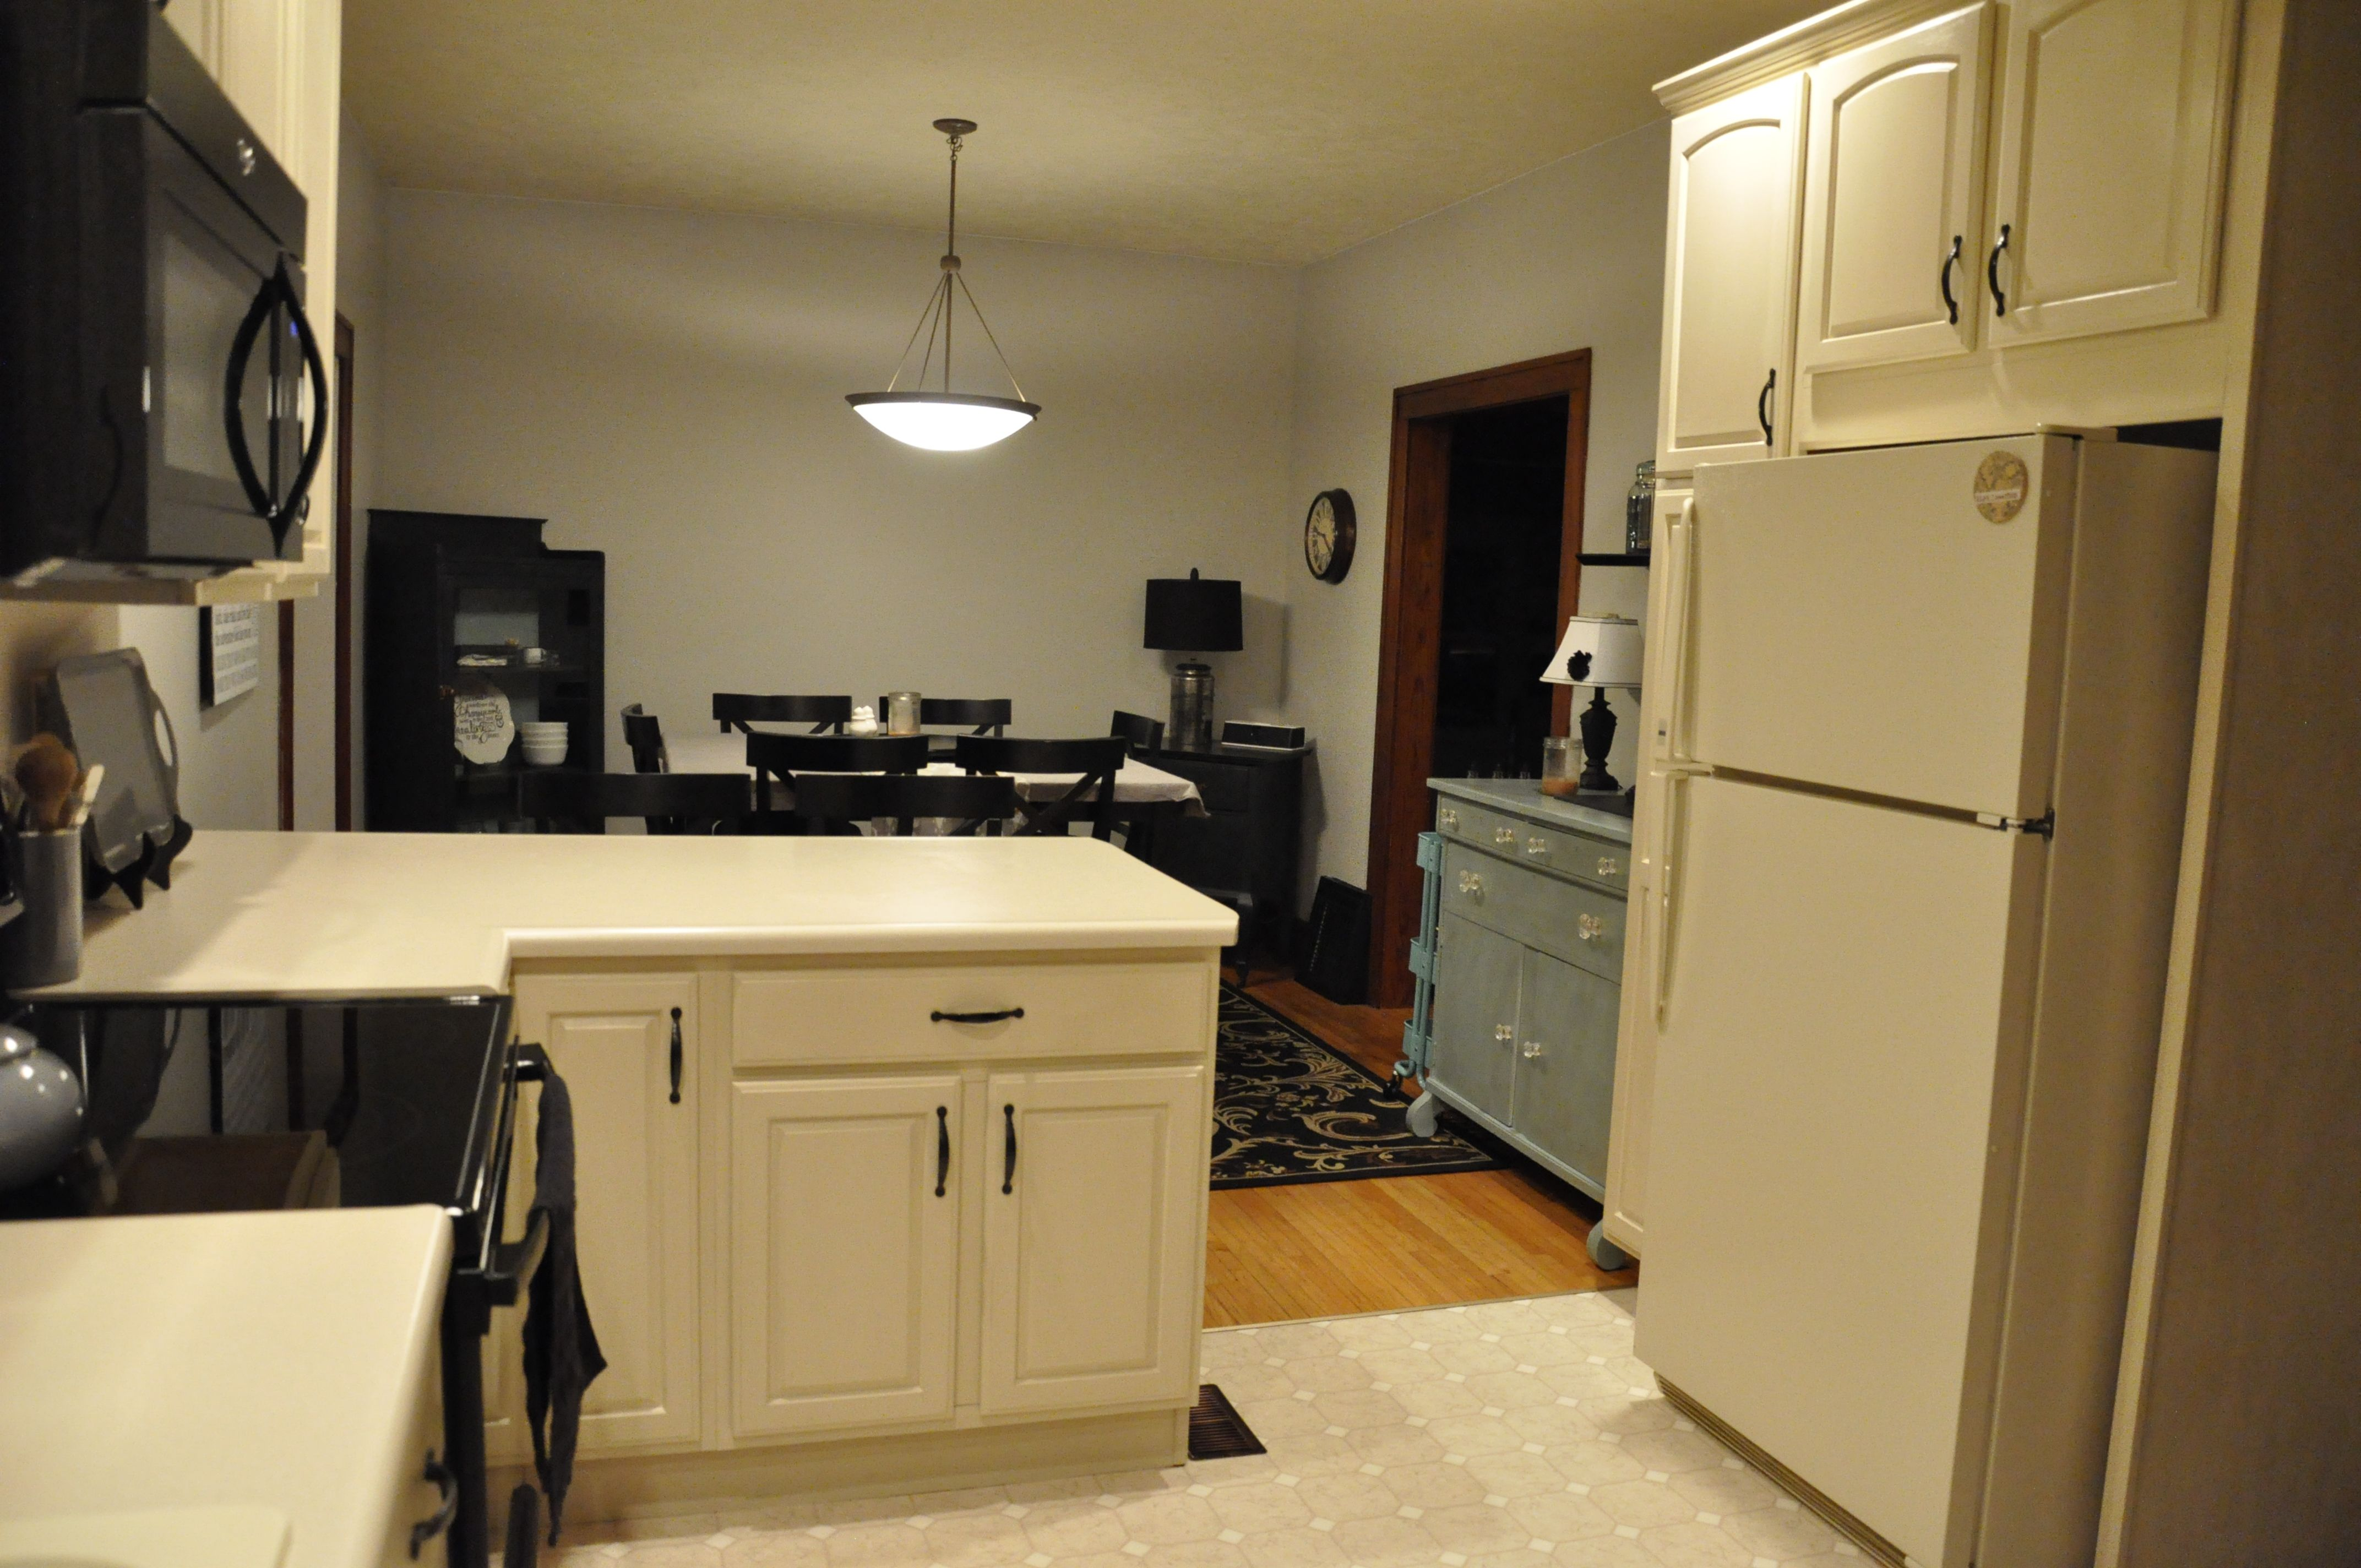 Annie Sloan Old Ochre After Pic Of Kitchen Cabinet Painting Painting Oak Cabinets Cozy Kitchen Kitchen Cabinets